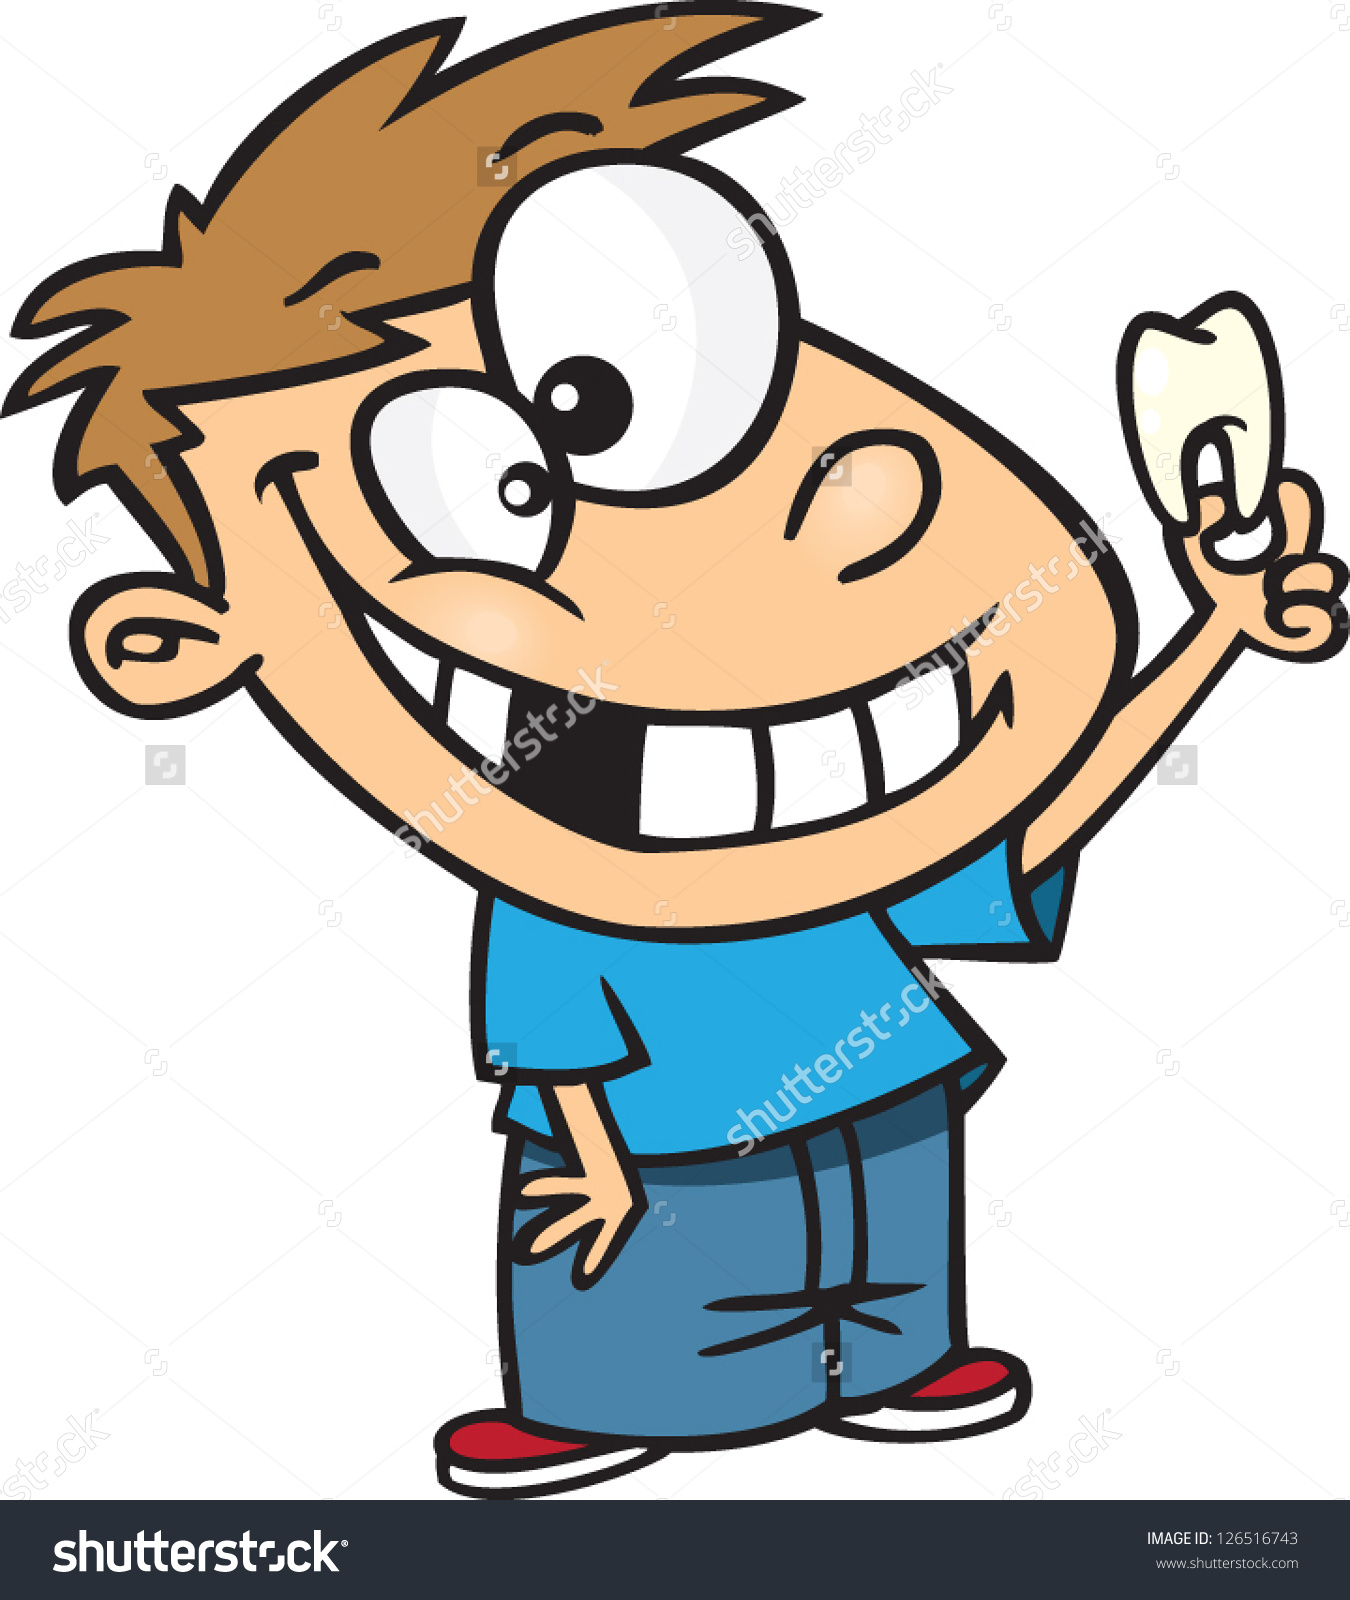 Losing a tooth clipart.